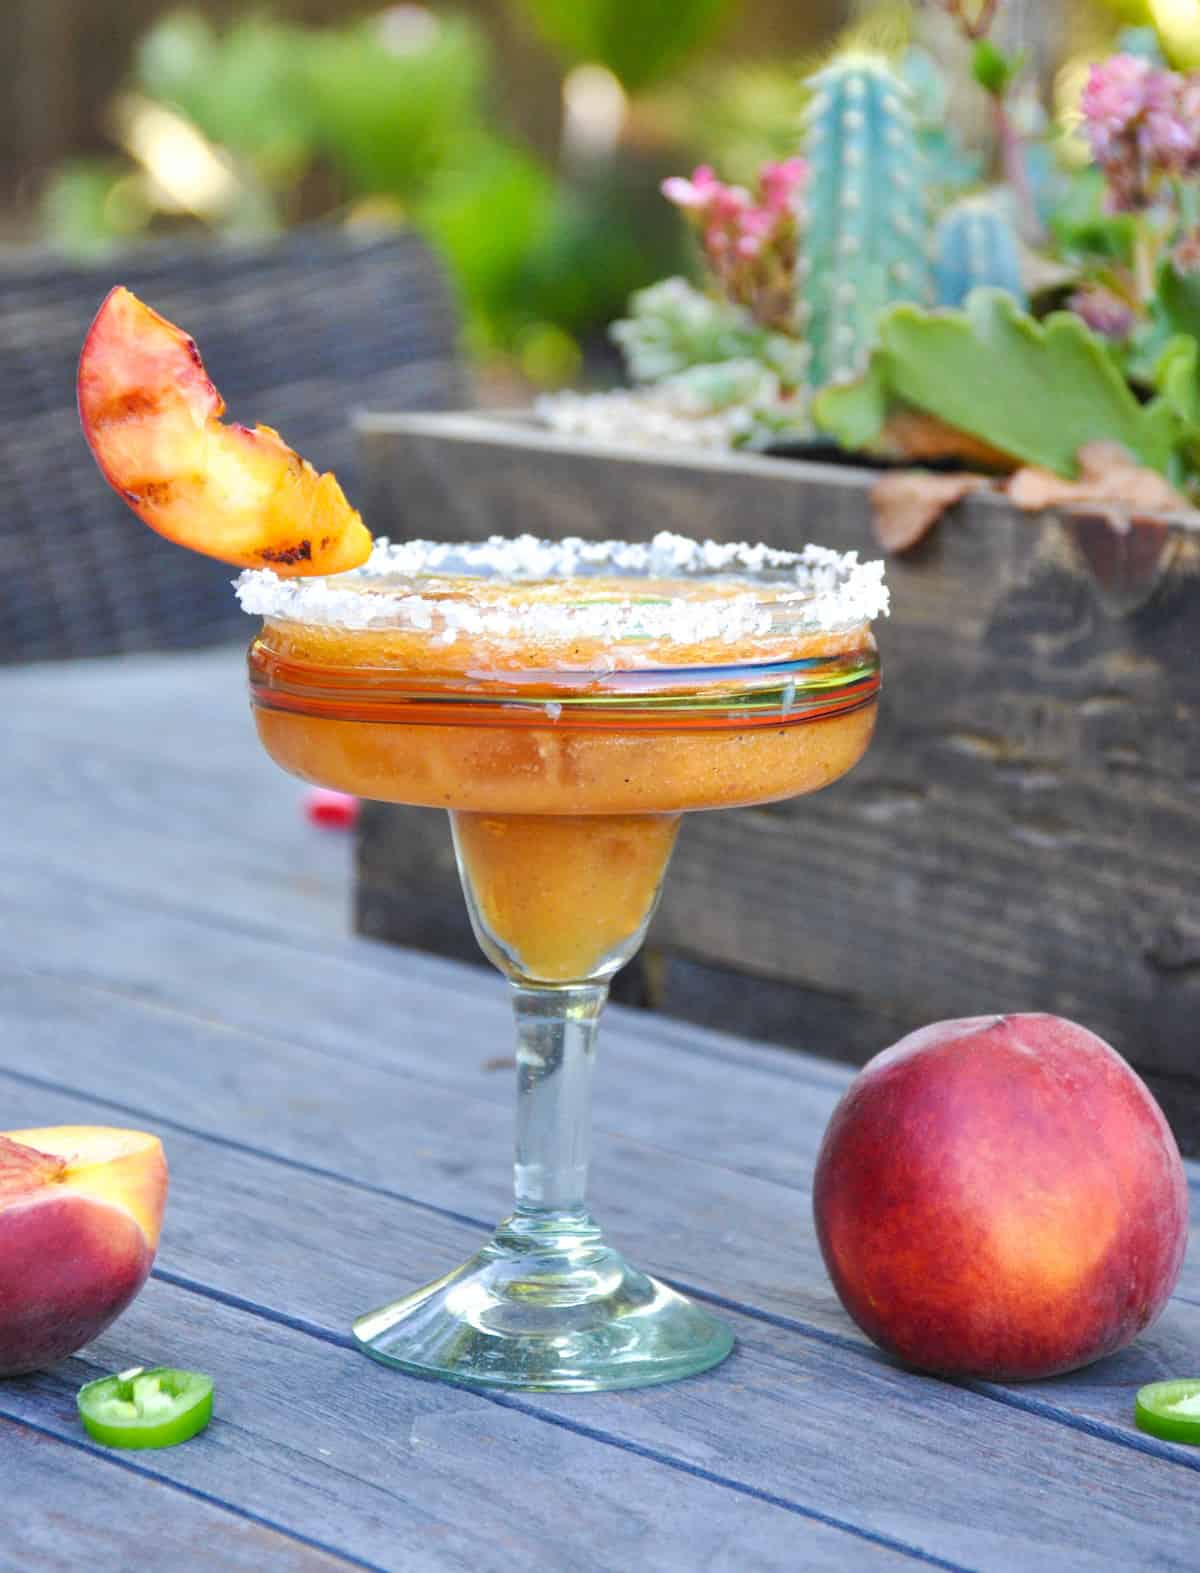 Spicy Grilled Peach margarita